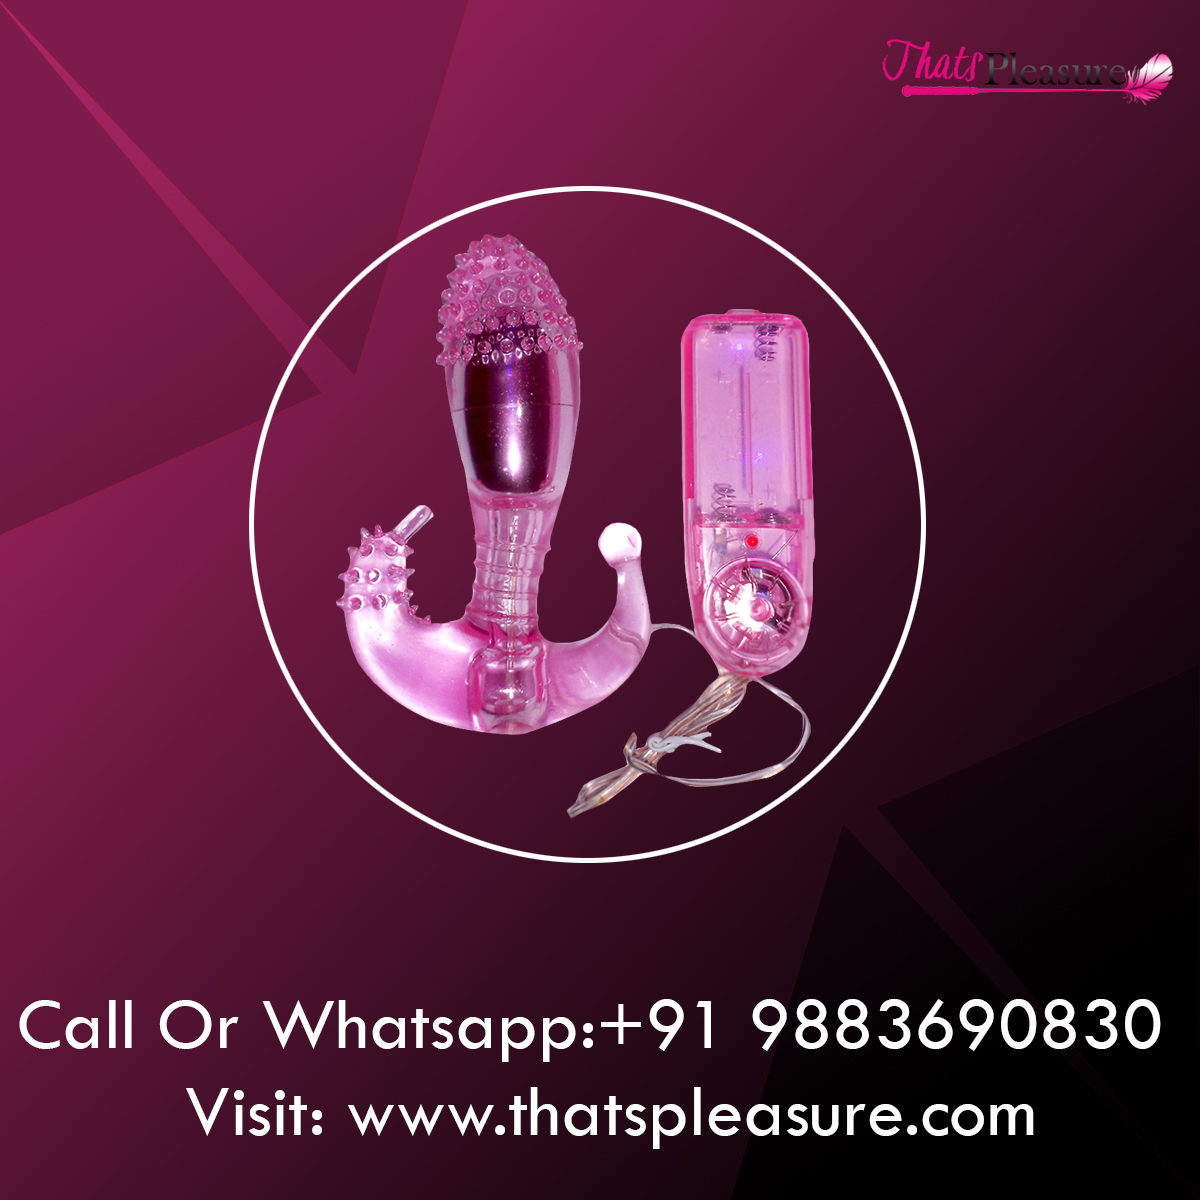 Artificial Sex toy for women in Lucknow